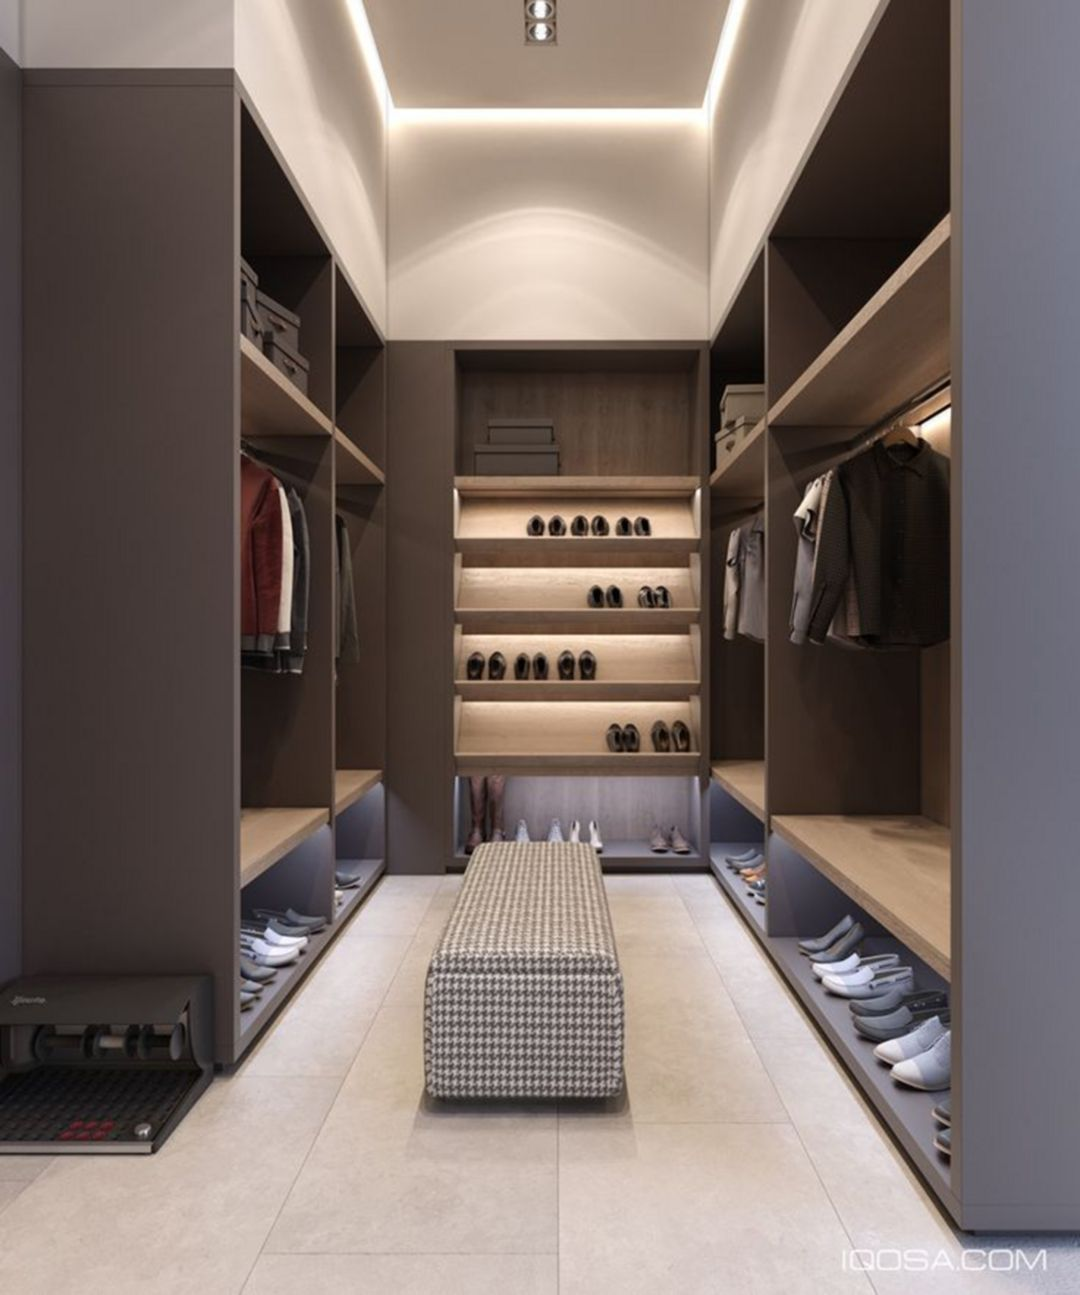 15 Amazing Ideas To Decorate Your Bedroom: 15 Amazing Closet Room Design Ideas For The Beauty Of Your